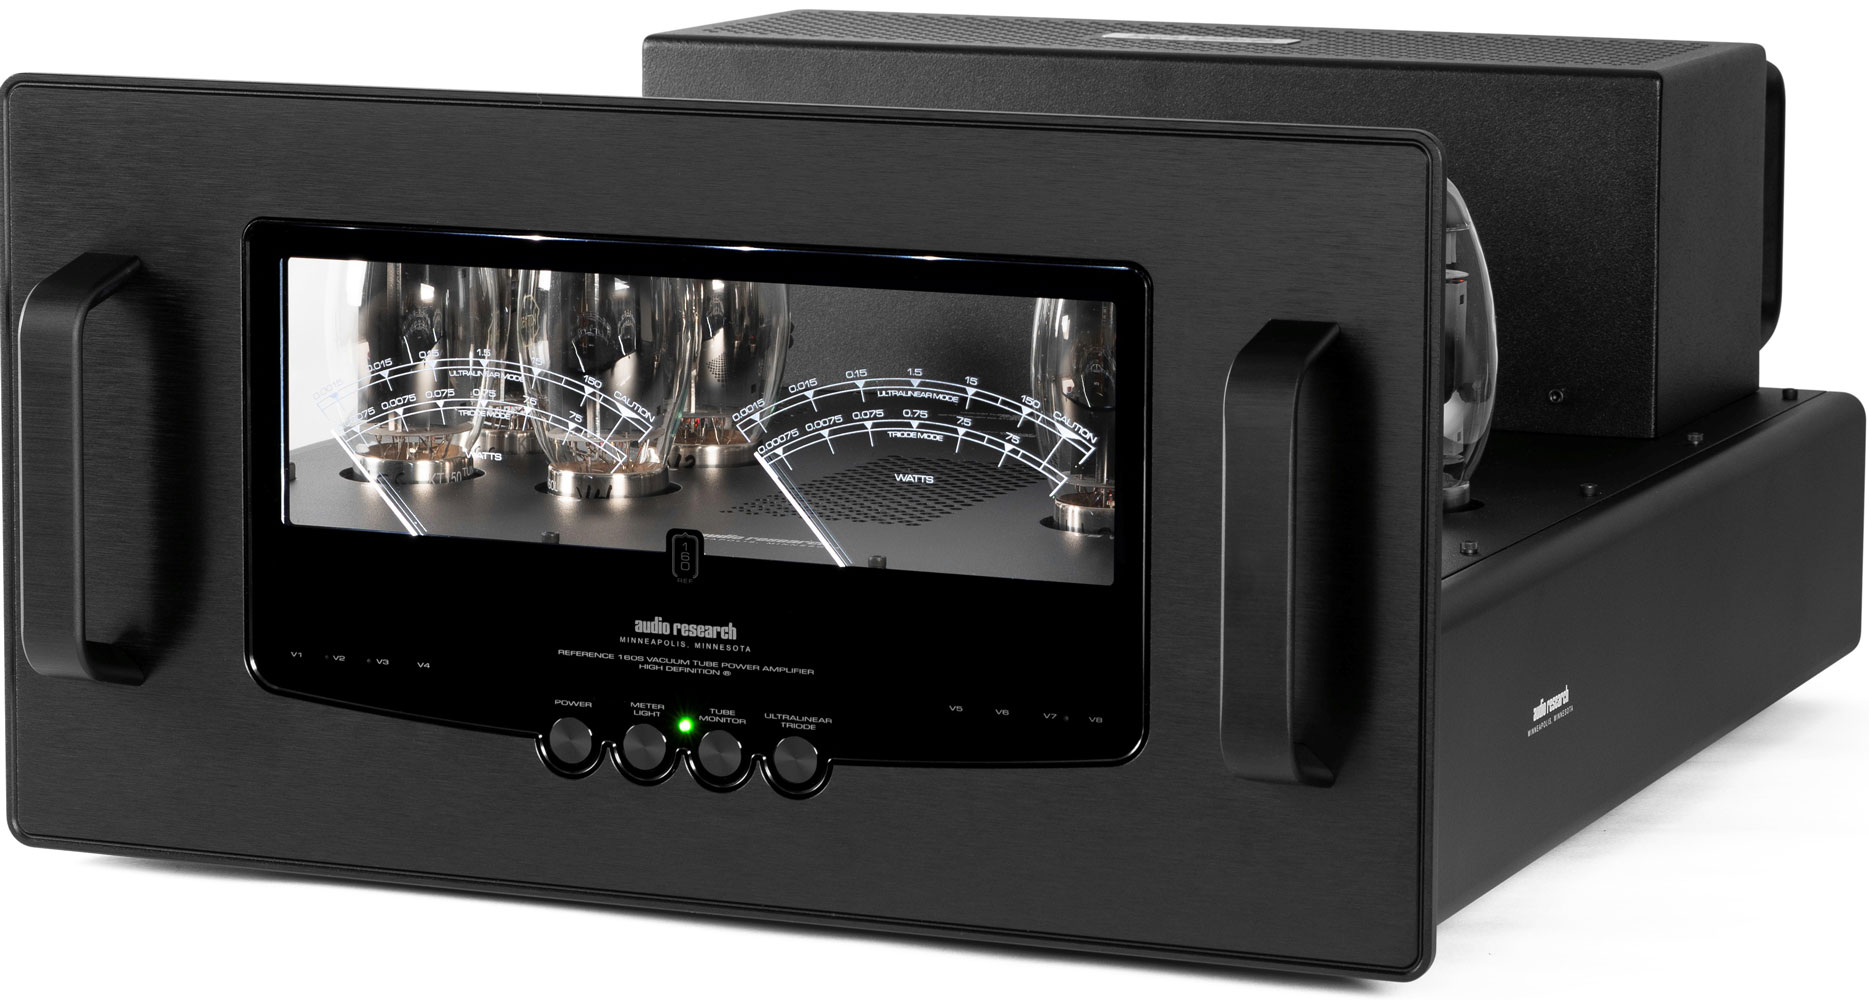 Audio Research launches new Reference 160S stereo power